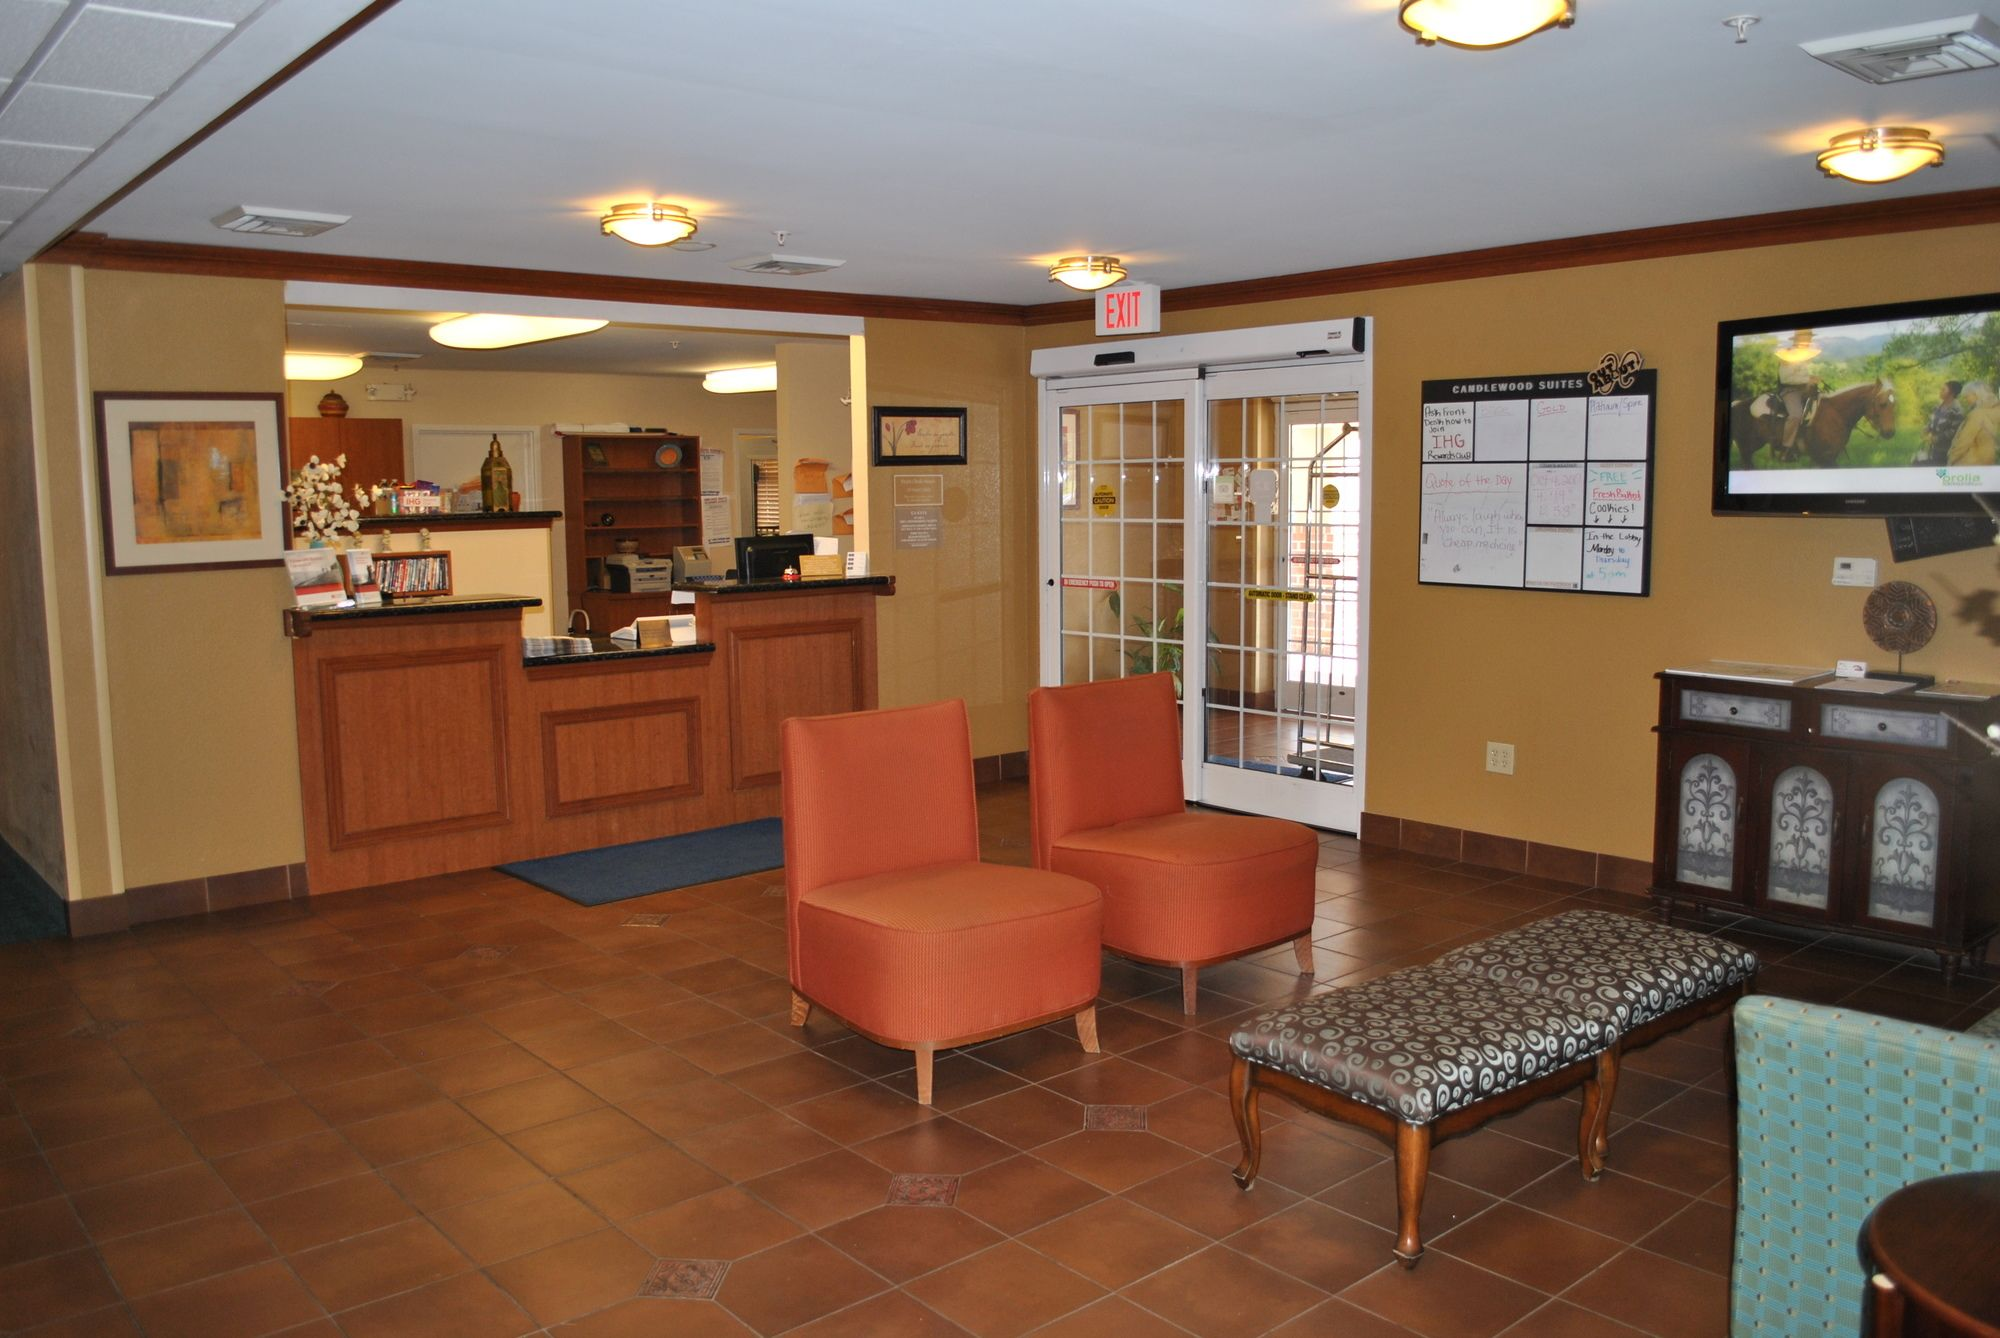 Candlewood Suites in Colonial Heights, VA